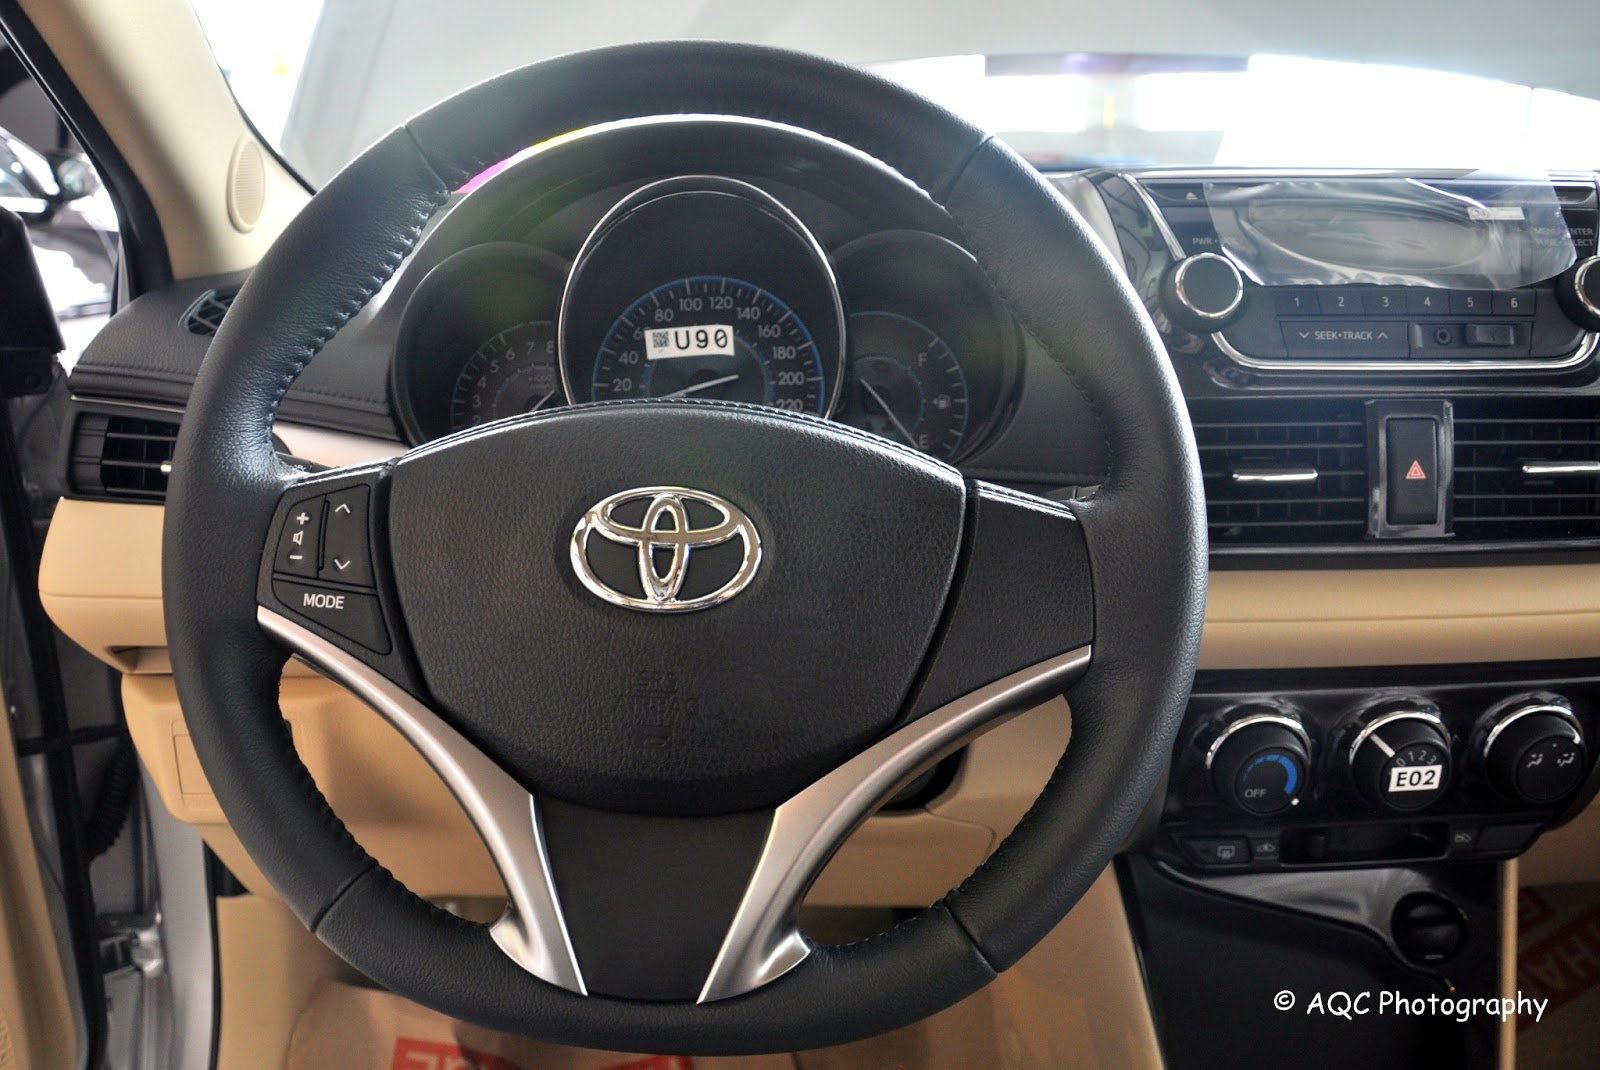 Toyota vios 2013 interior photos